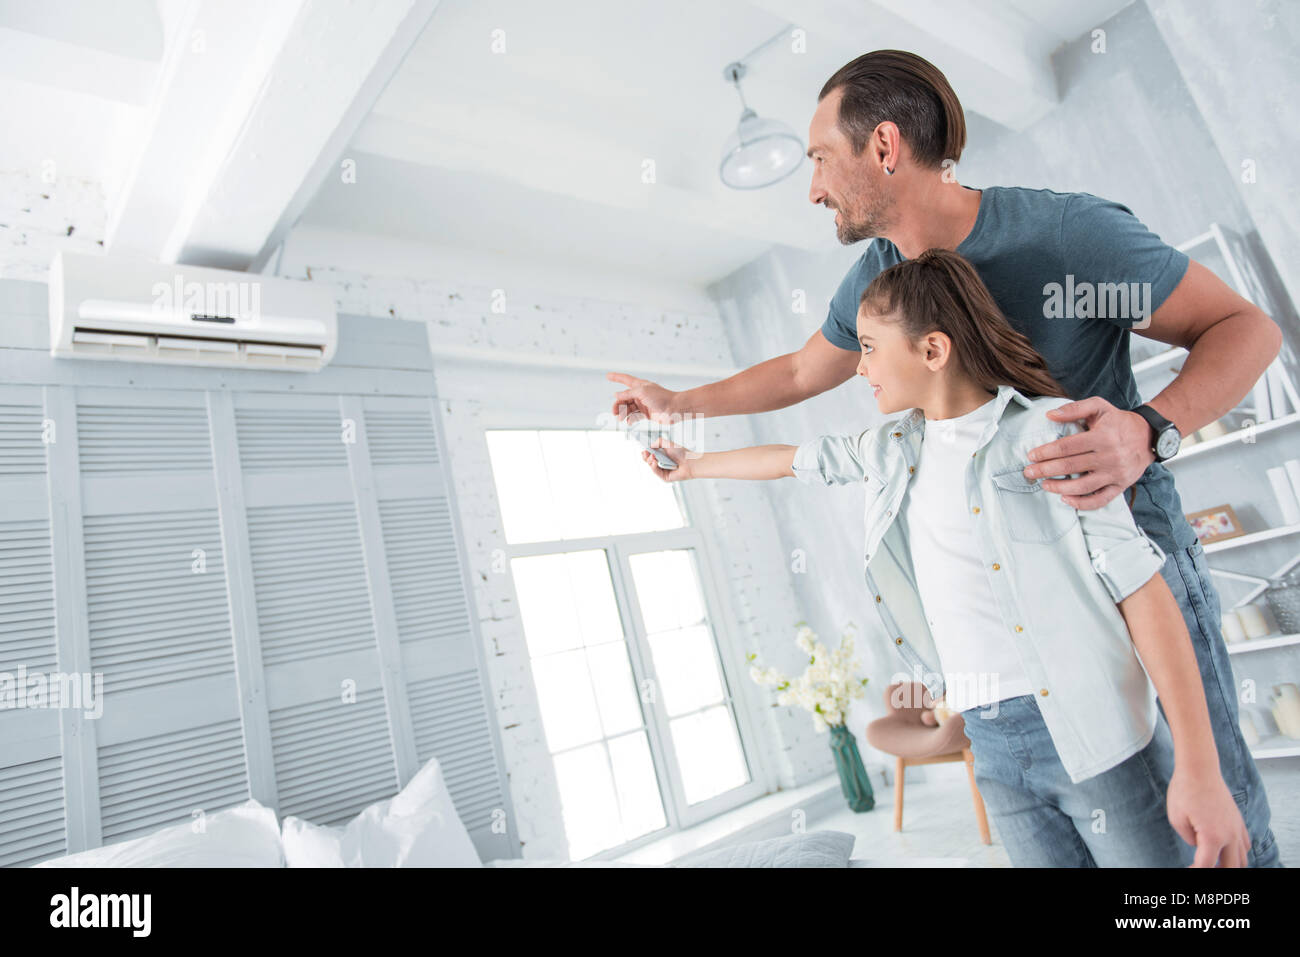 Positive joyful man pointing at the air conditioner - Stock Image